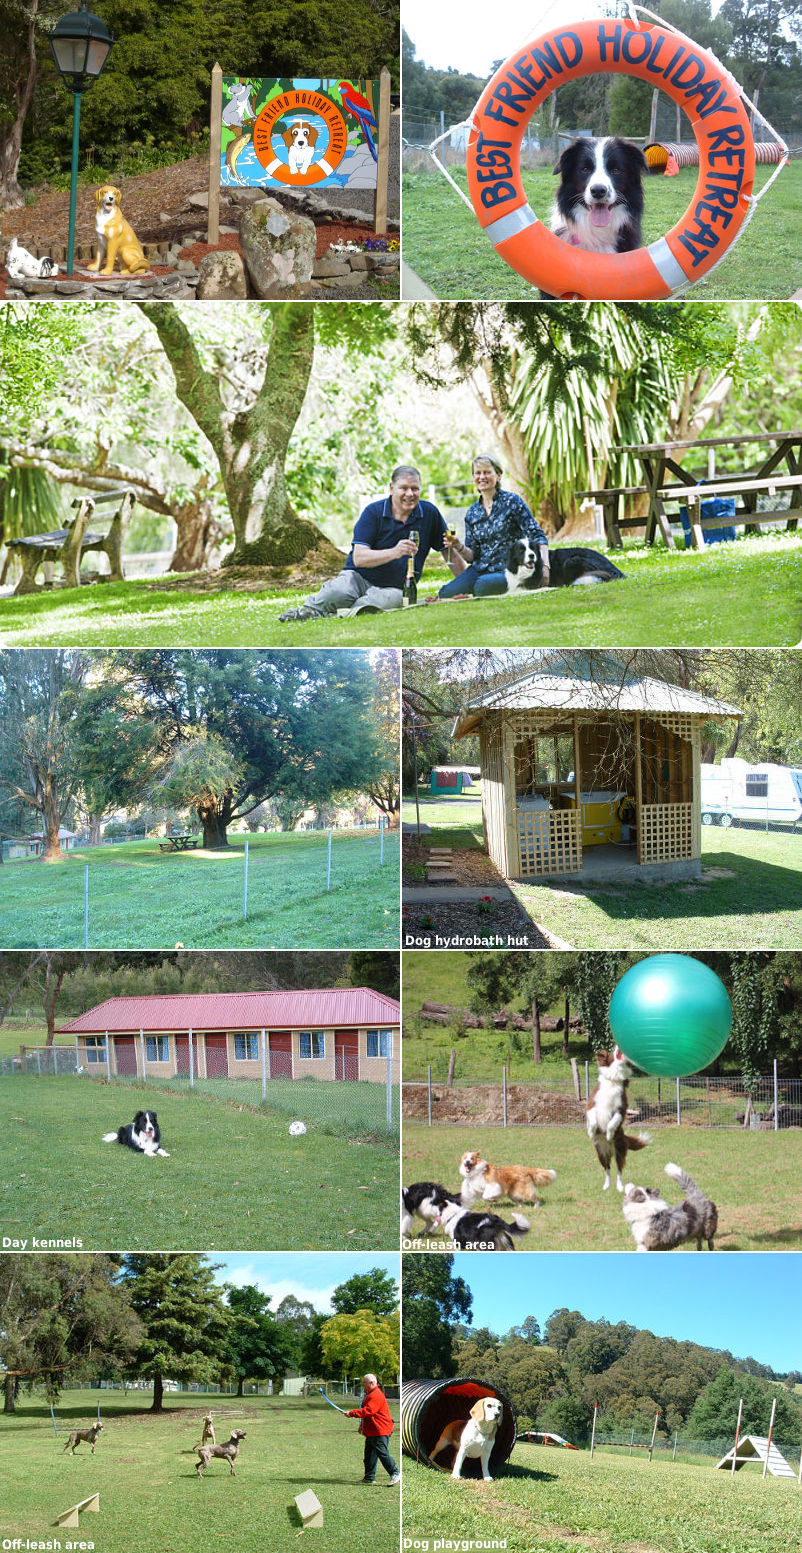 Best Friend Holiday Retreat - Grounds and facilities